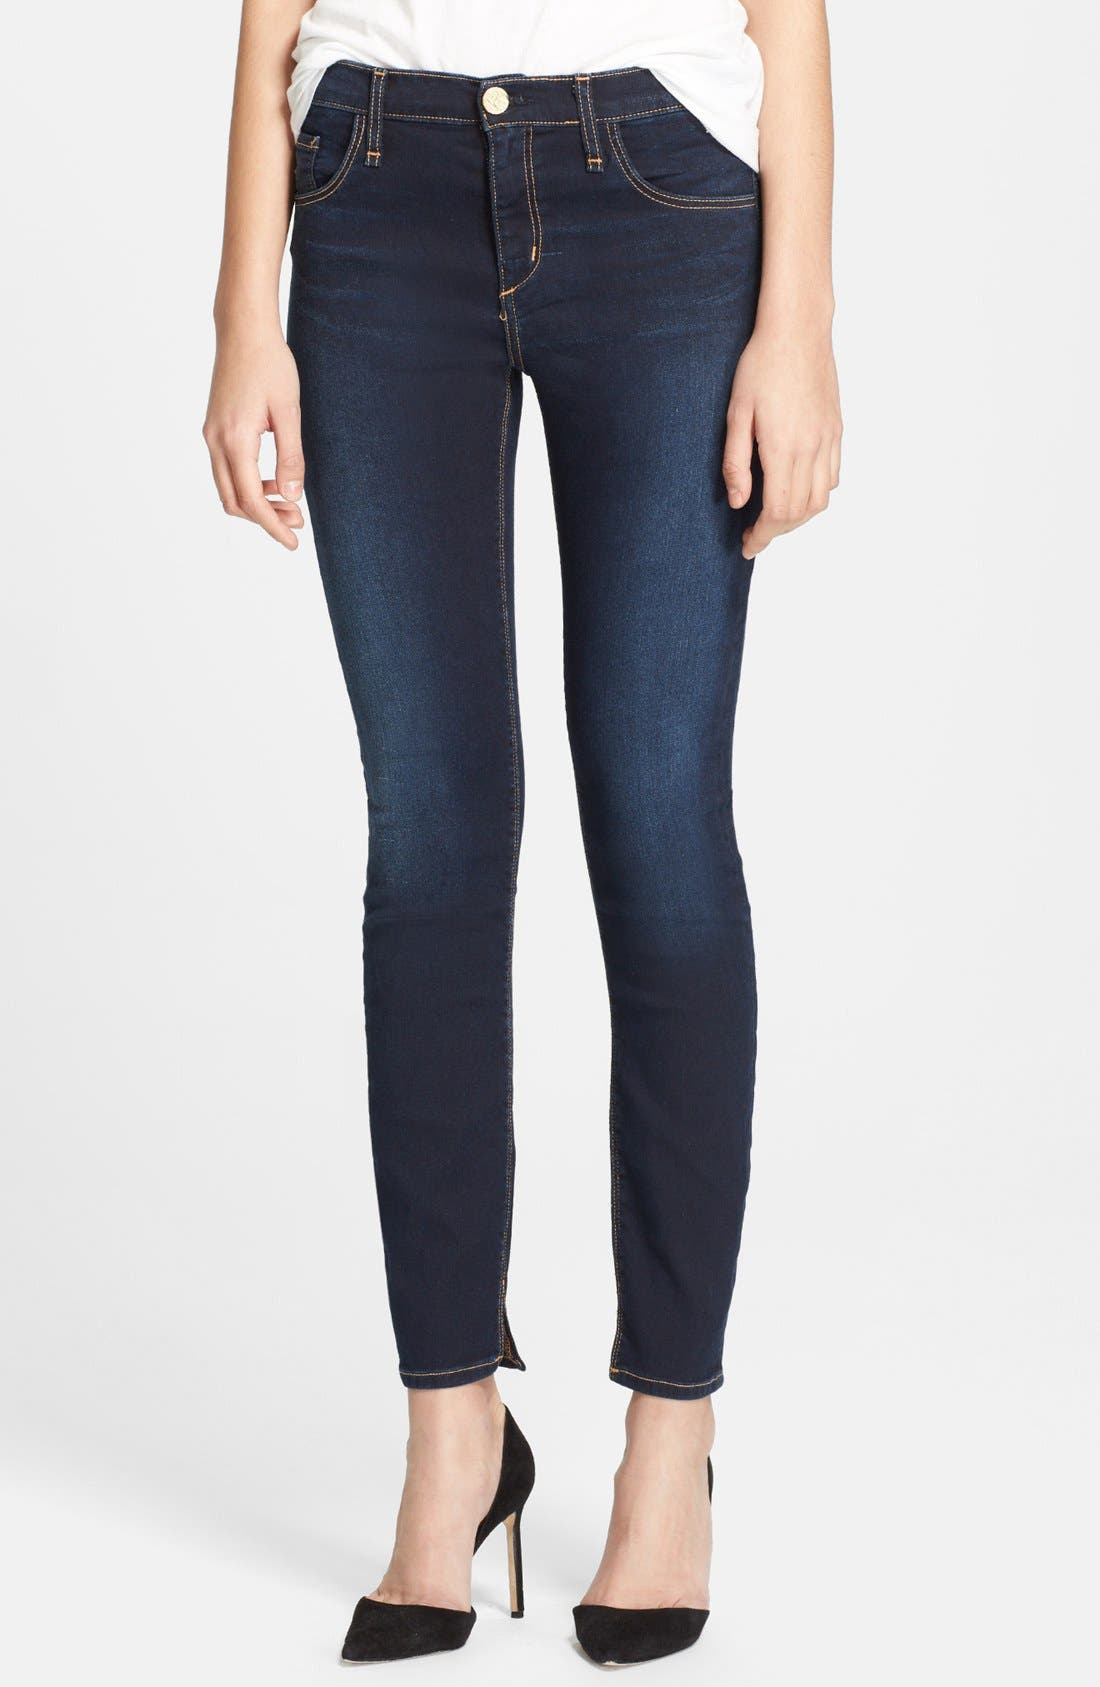 Main Image - McGuire Skinny Ankle Jeans (Atlantic Blue)